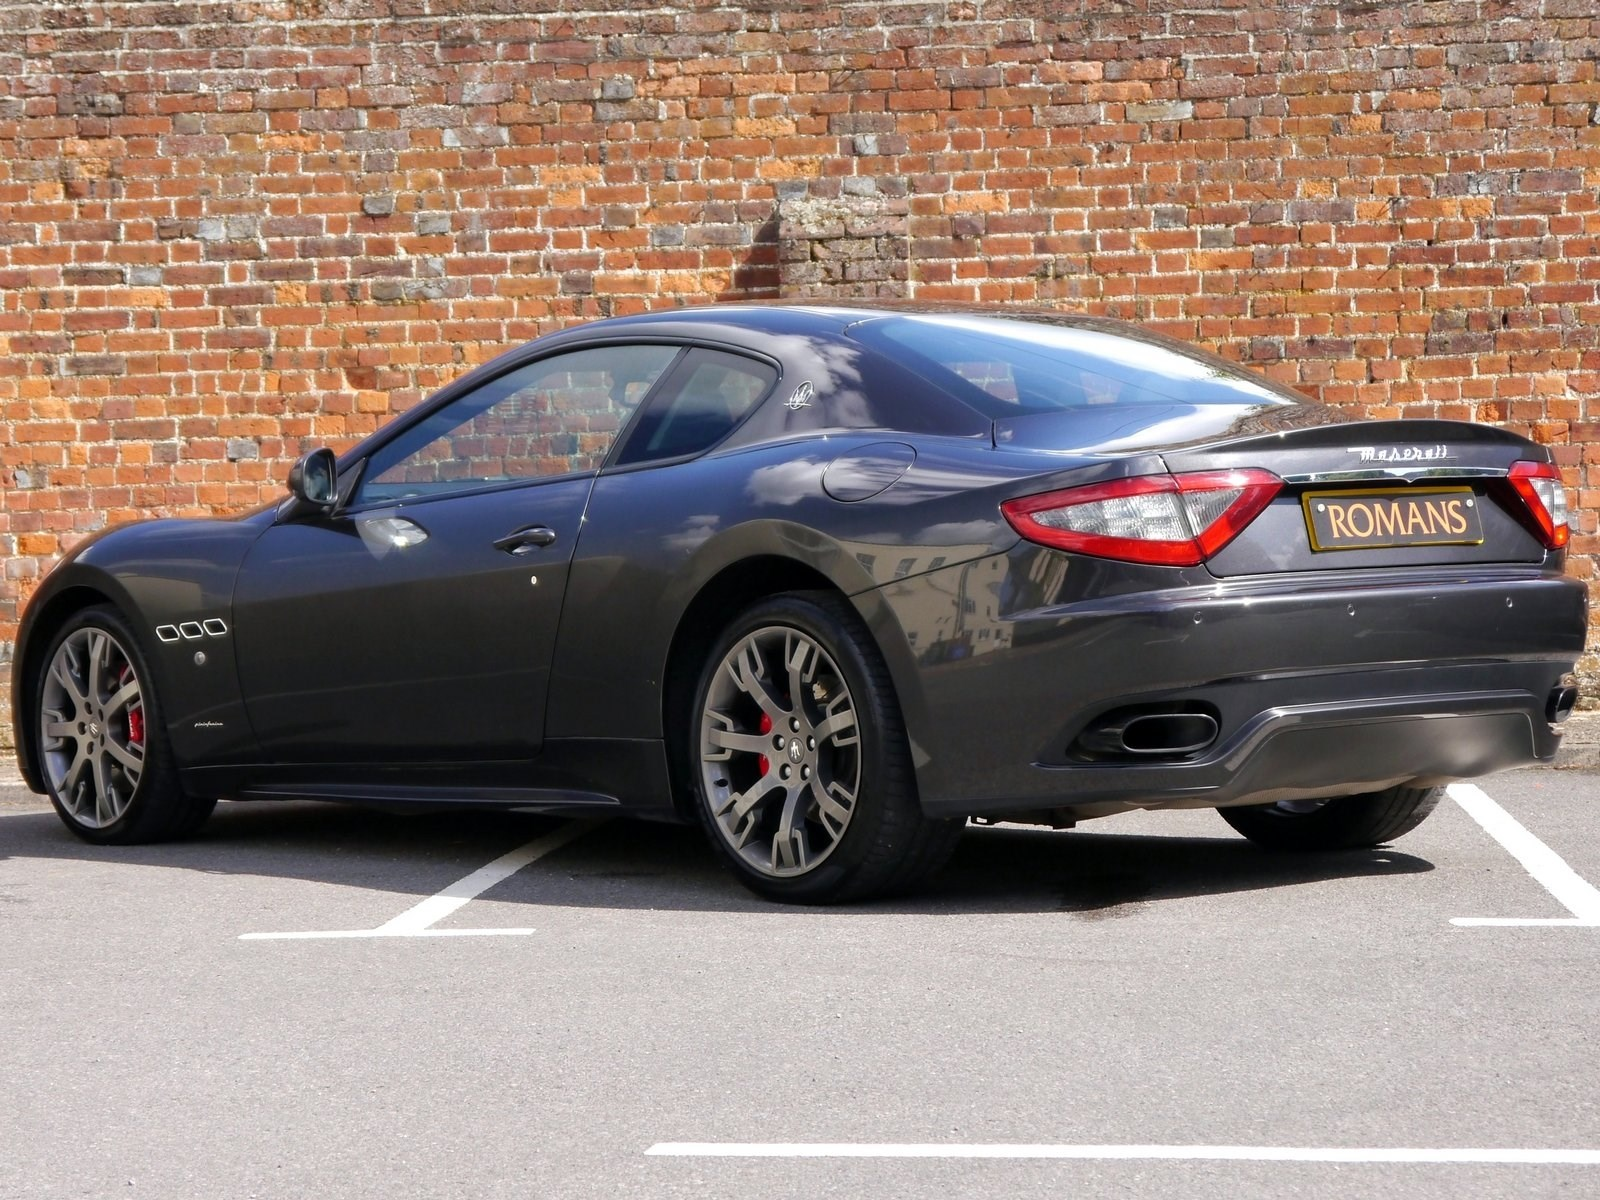 maserati granturismo 4 7 sport mc shift maserati fsh maserati extended warranty for sale. Black Bedroom Furniture Sets. Home Design Ideas